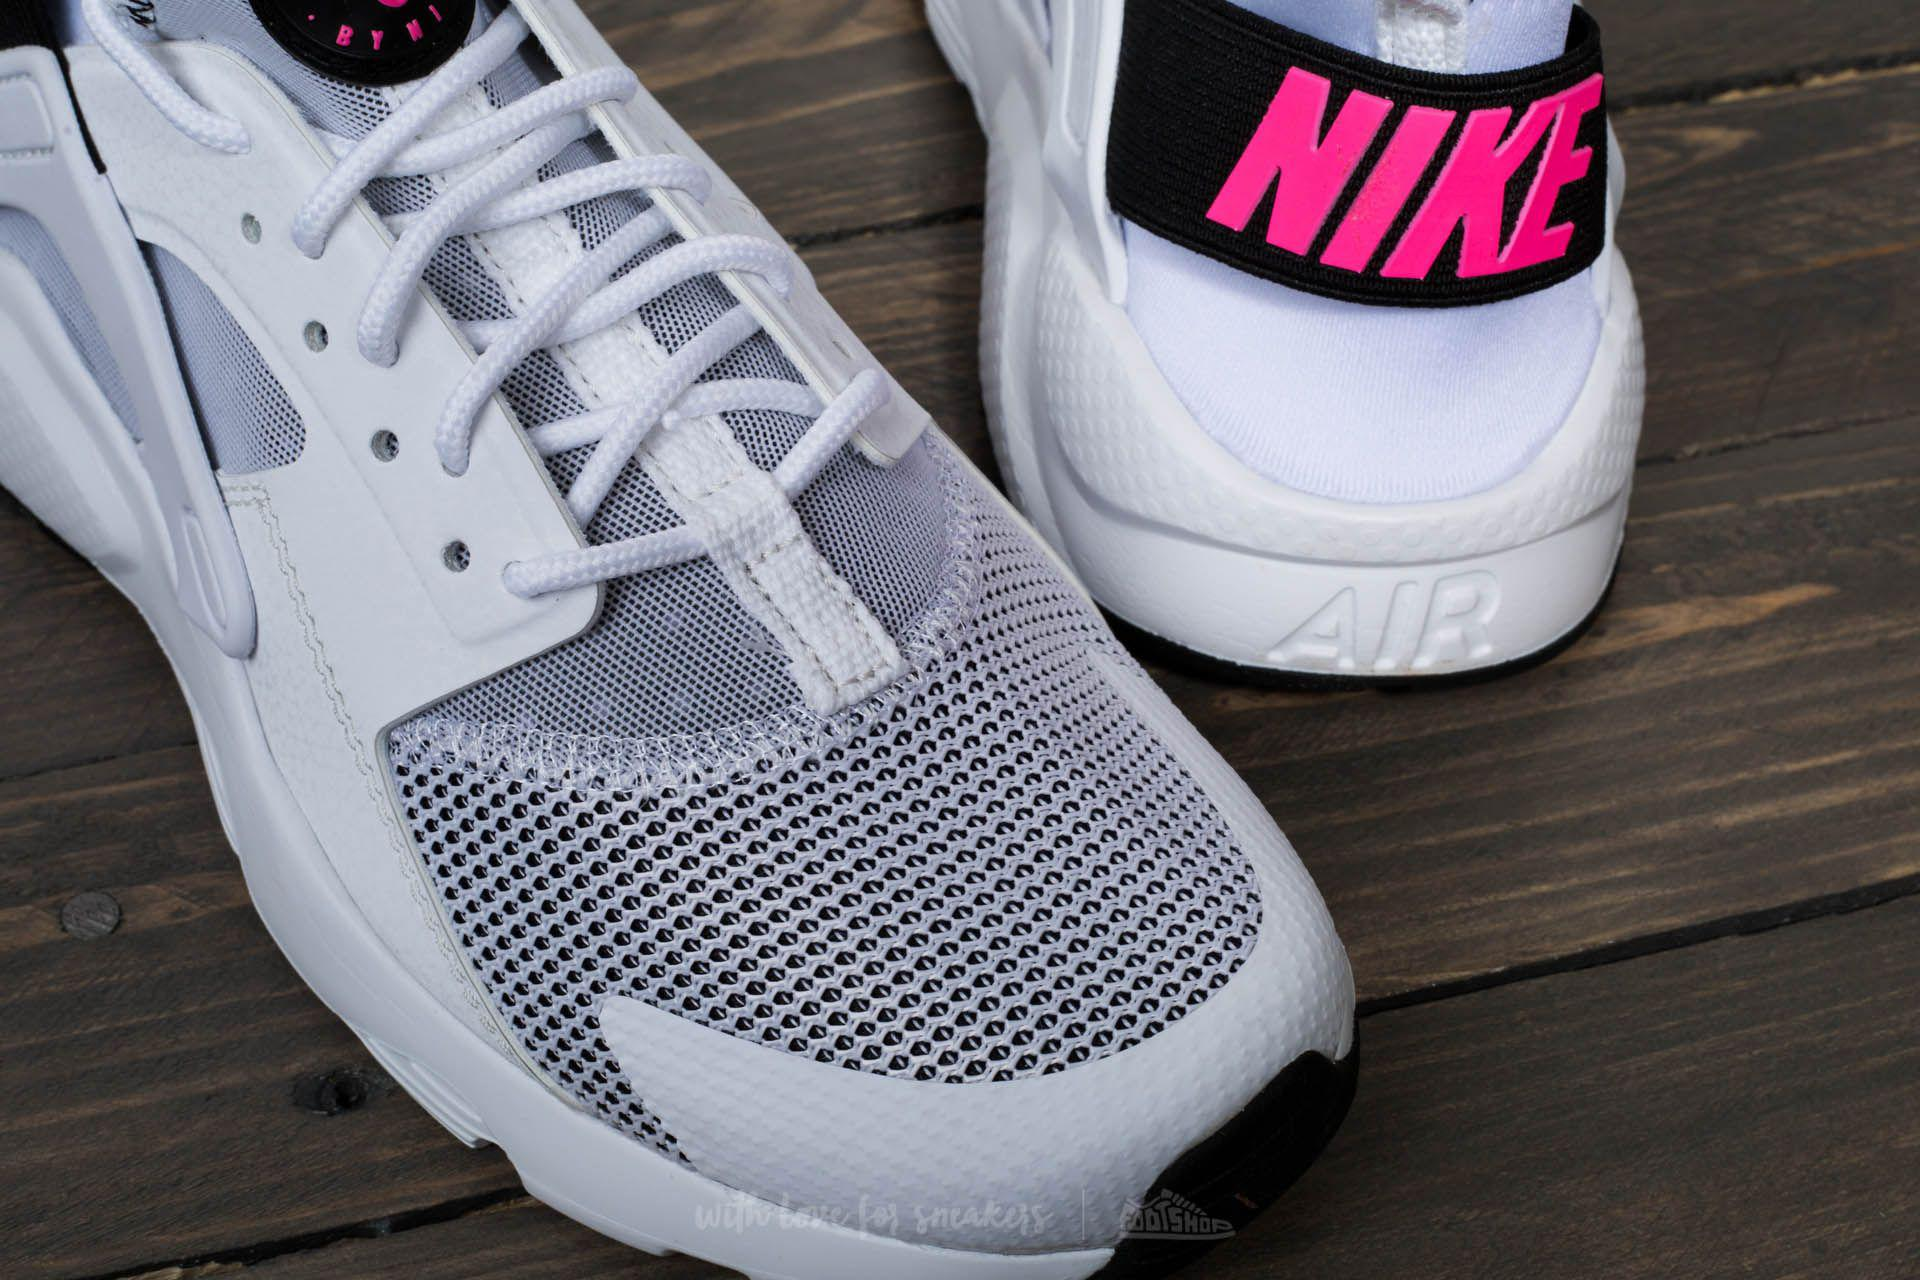 f23a290a1b8b9 switzerland lyst nike air huarache run ultra gs white black pink blast  787ae 4d07f